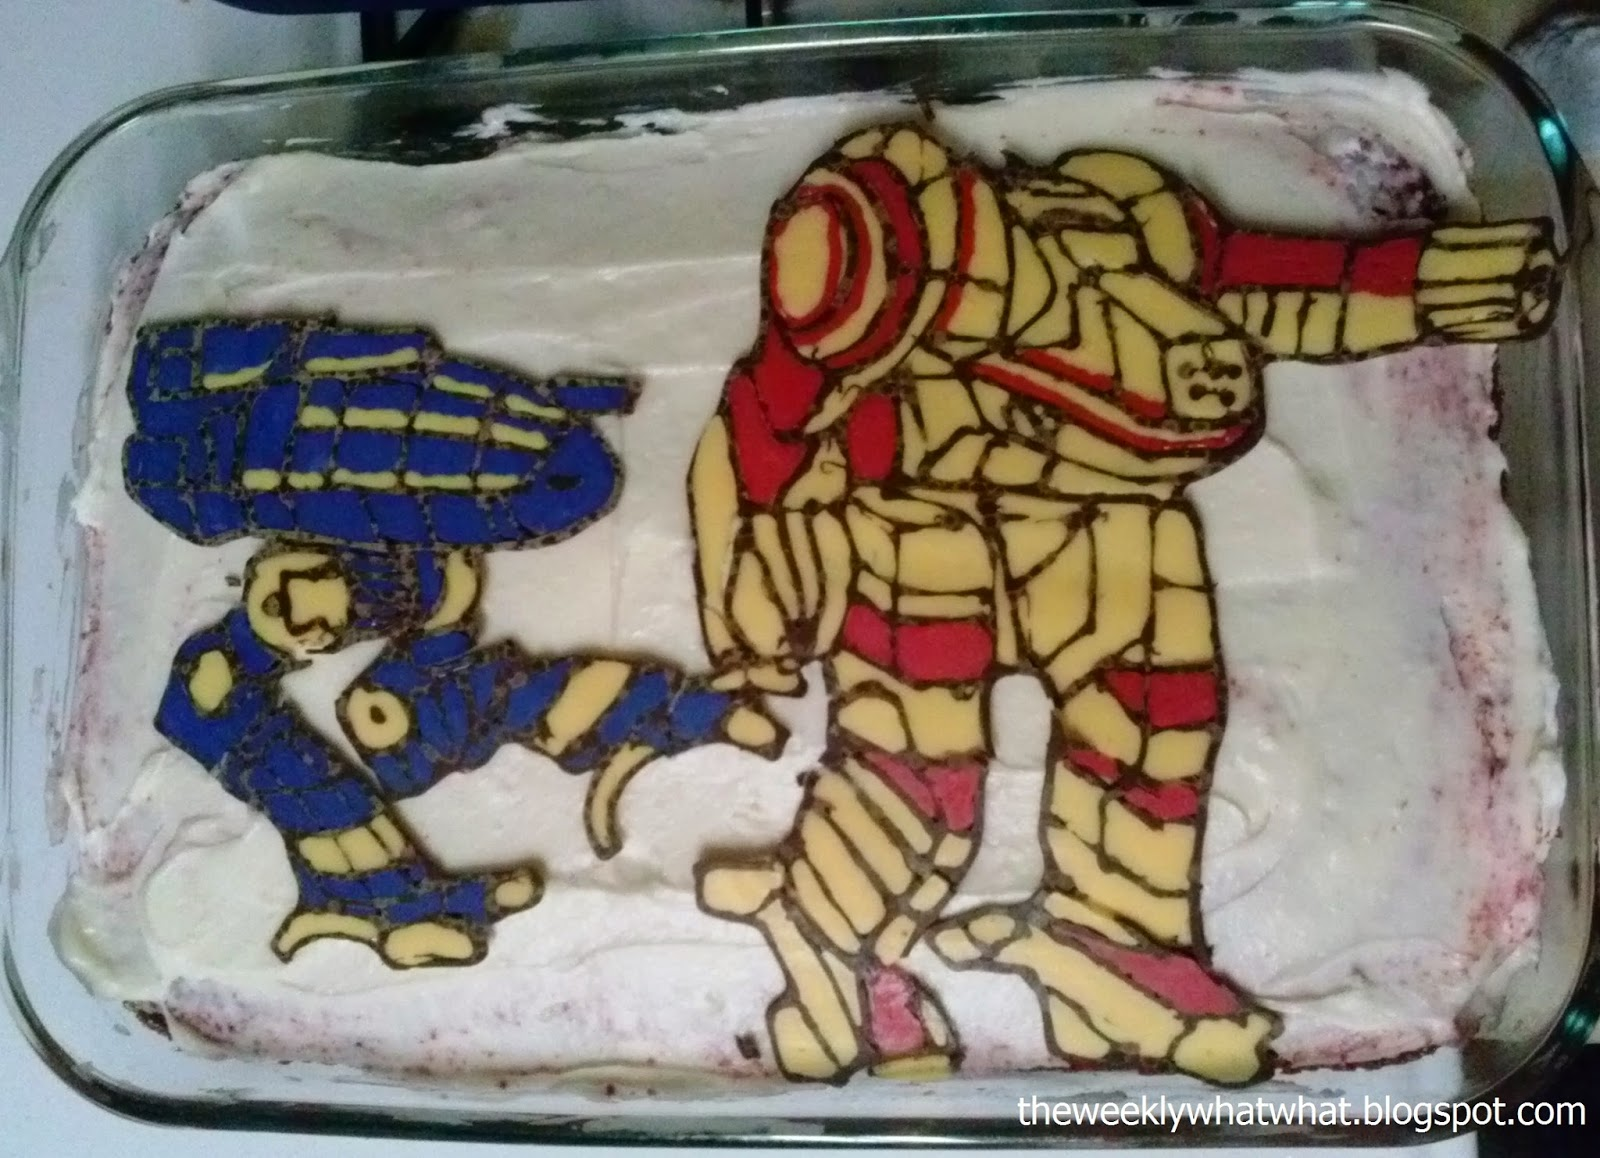 Battletech Cake using Color Flow Technique -- Catapult and Dragon